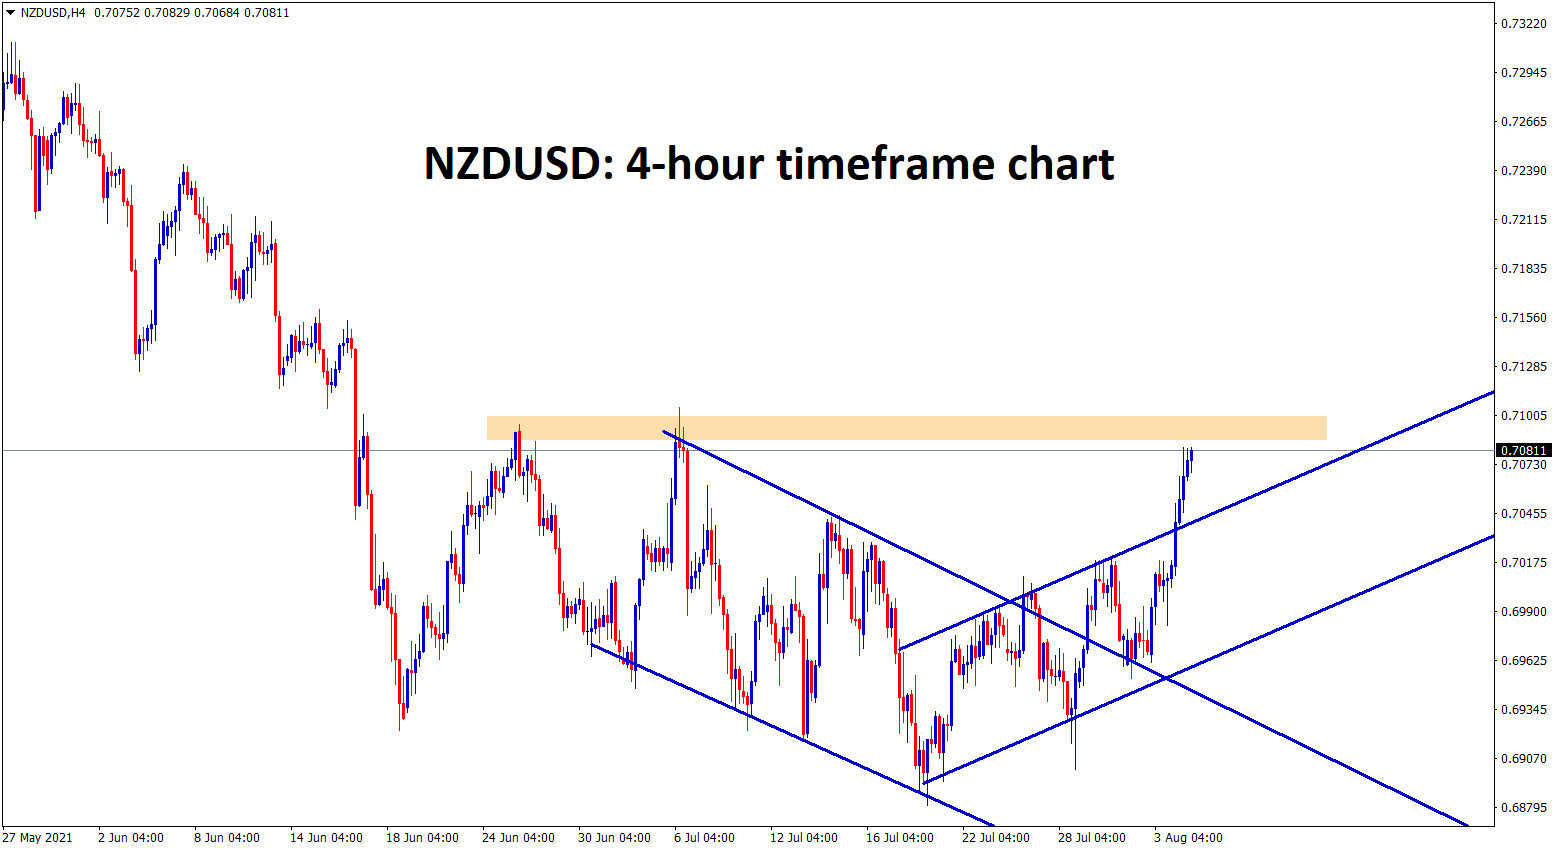 NZDUSD is going to reach the resistance area after breaking the channel ranges